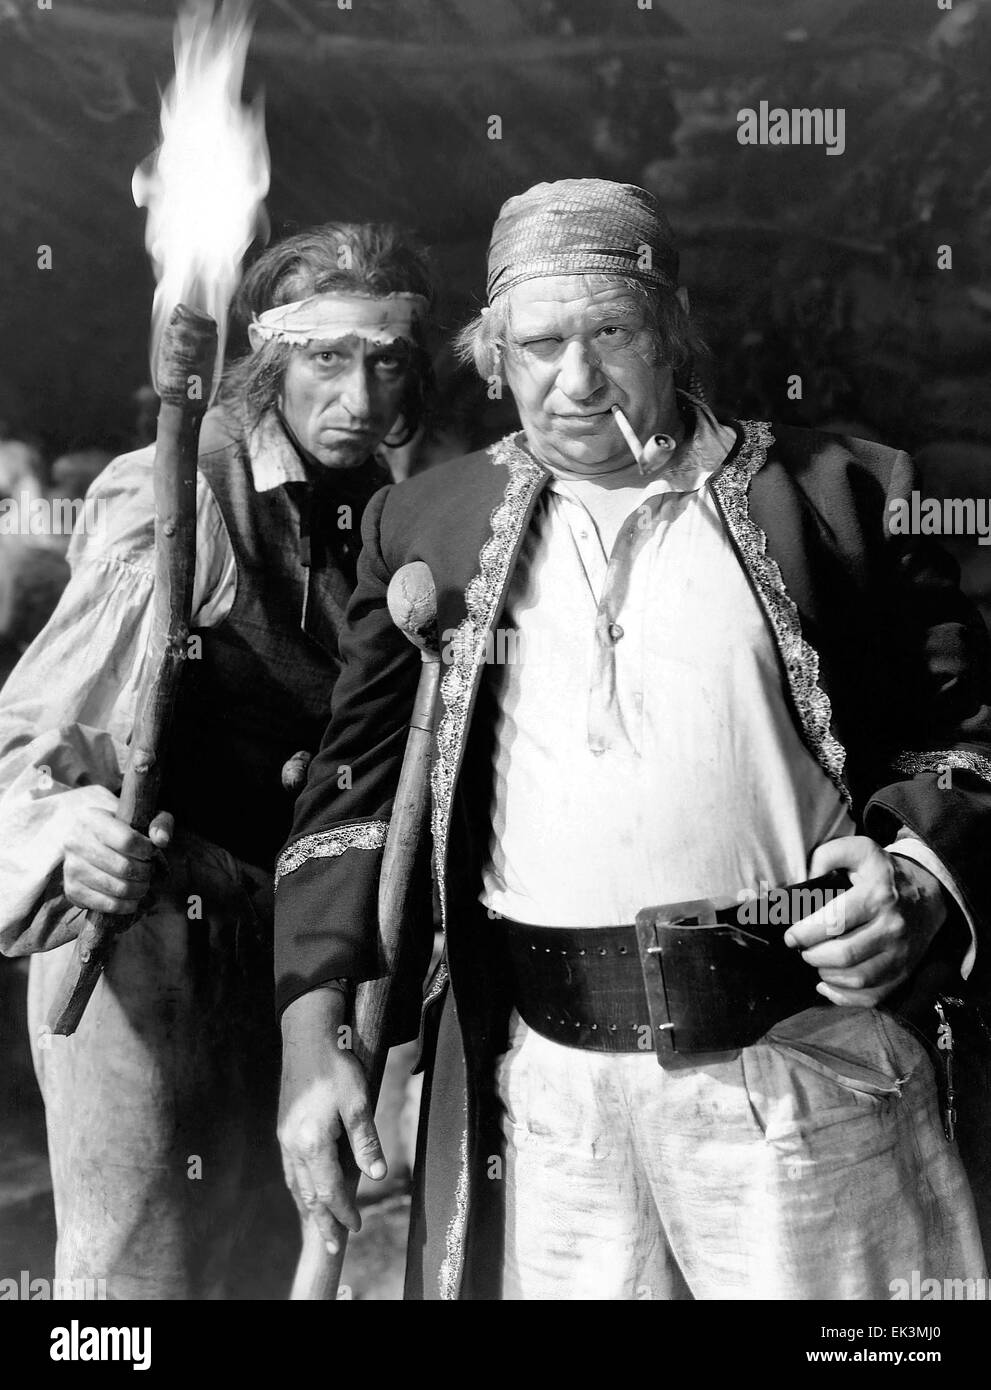 Wallace Beery, (right), on-set of the Film 'Treasure Island', 1934 - Stock Image